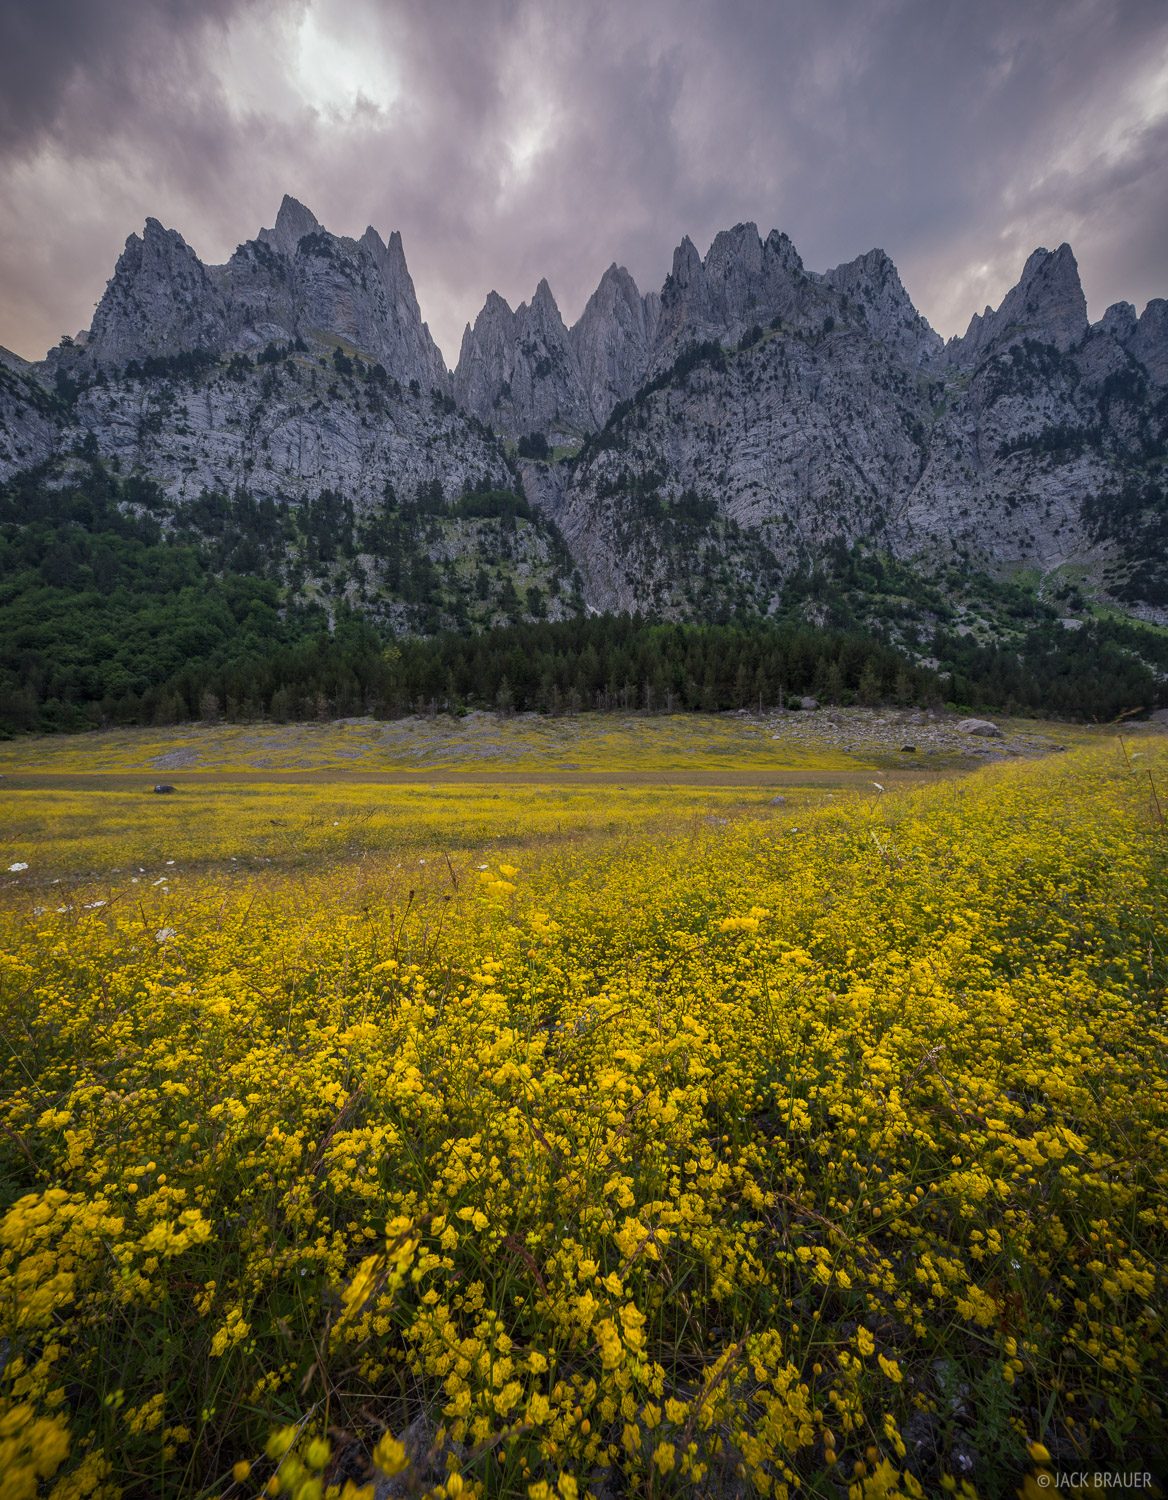 Vast fields of little yellow wildflowers adorn the dried Liqeni Geshtares lakebed below the jagged spires of Karanfili. The spot...